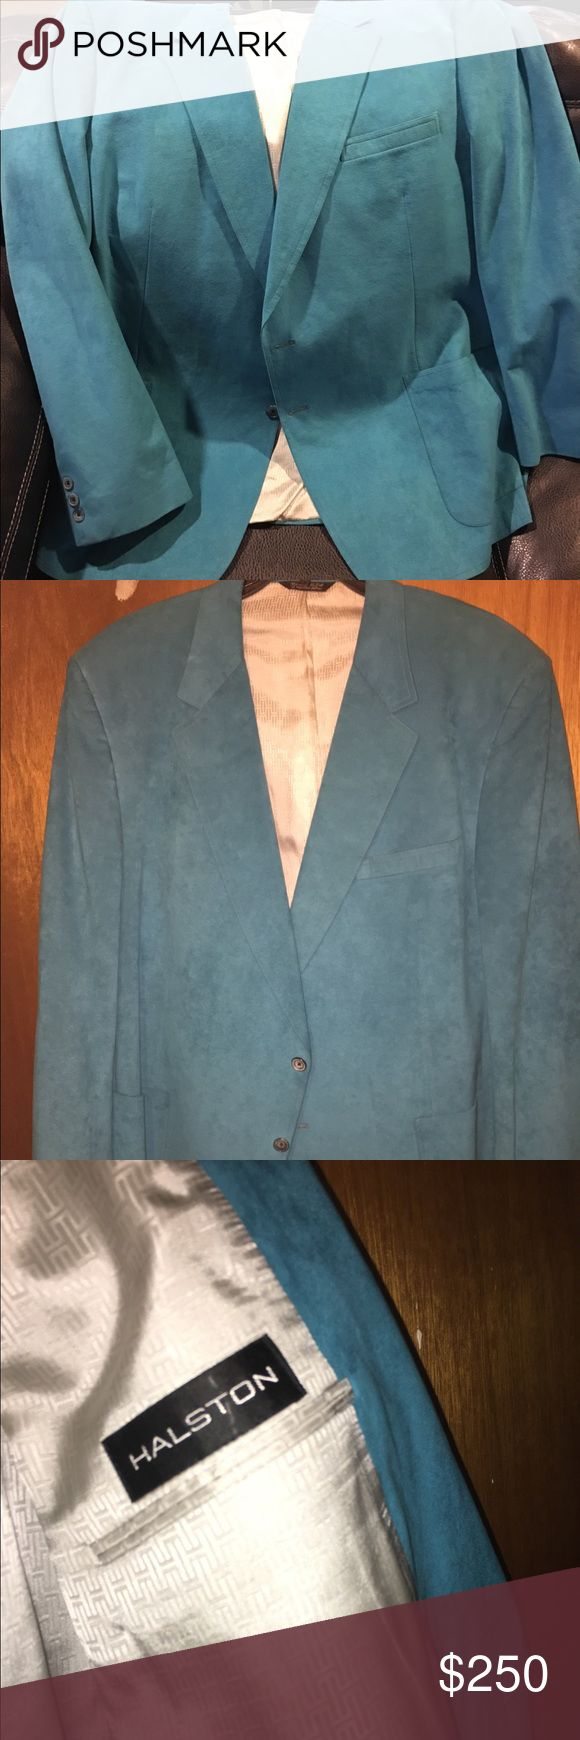 Genuine Suede Blazer - Rare Color Halston Vintage Suede Blazer - Excellent Condition Teal Colored, very rare find!!!! Halston Suits & Blazers Sport Coats & Blazers